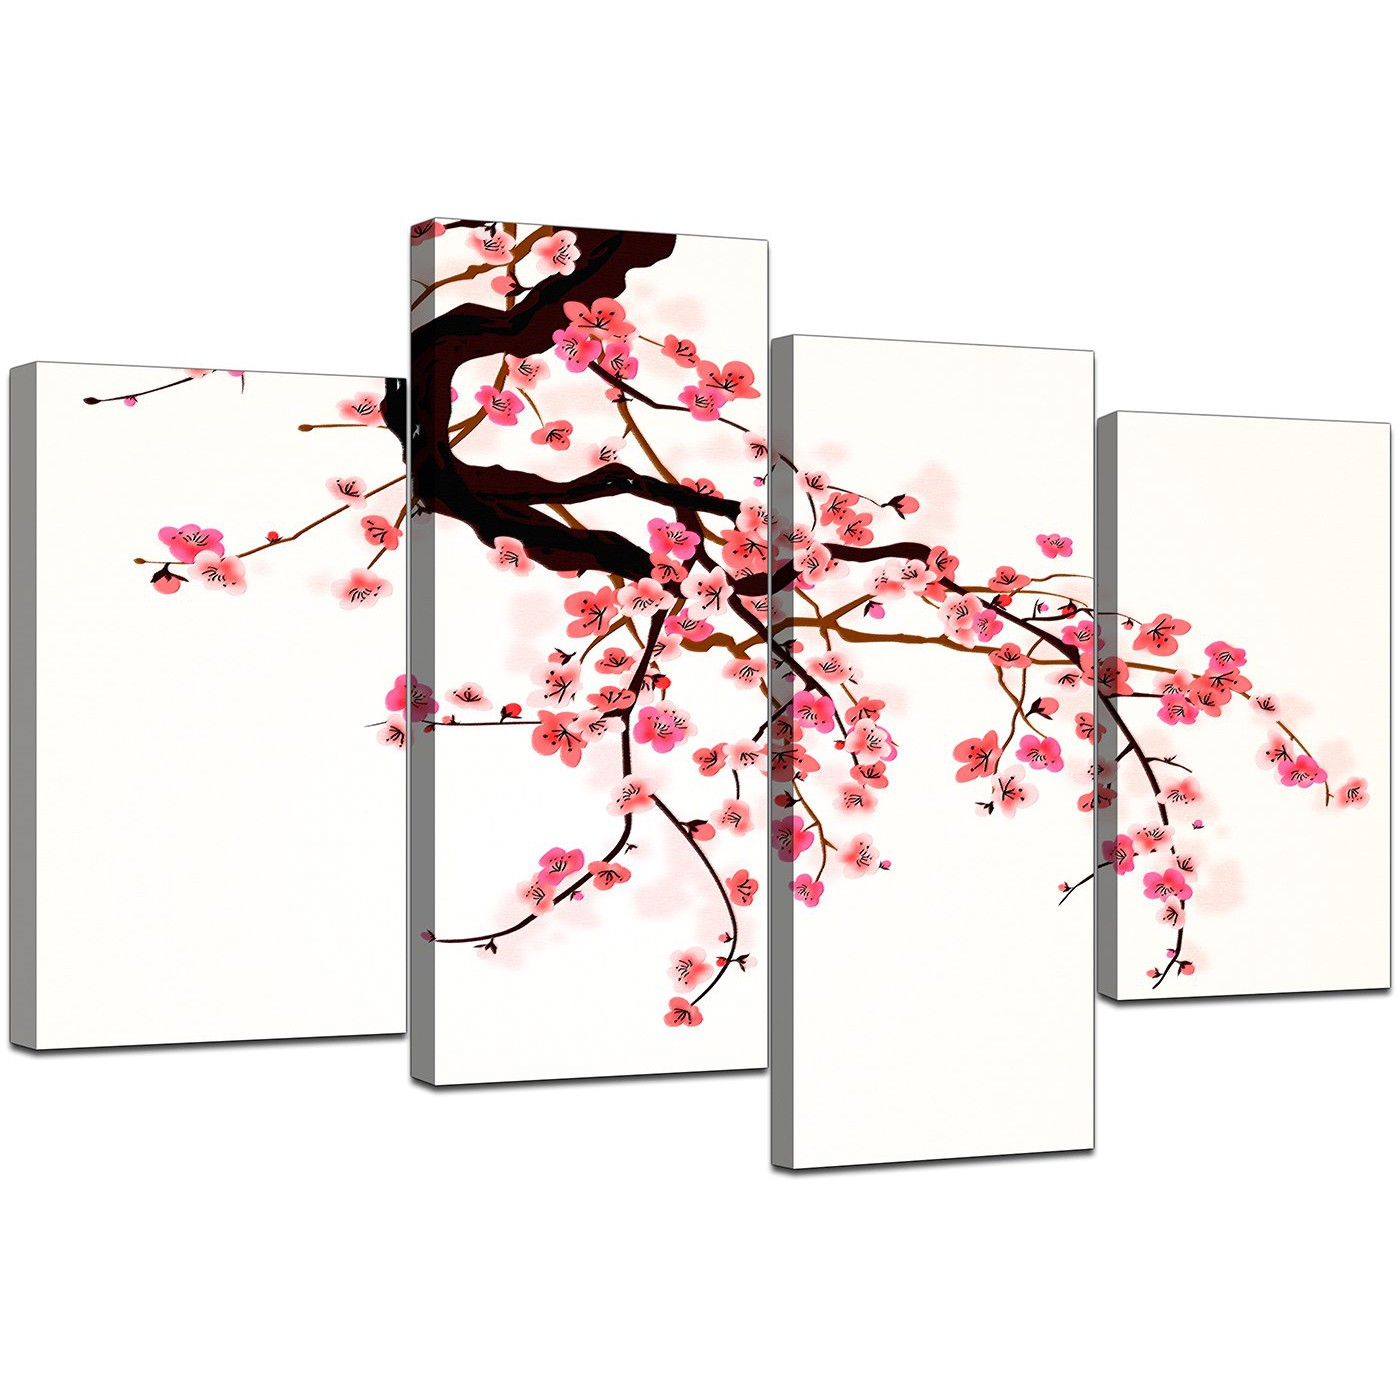 Cherry Blossom Canvas Wall Art canvas prints uk of cherry blossom for your living room - set of 4